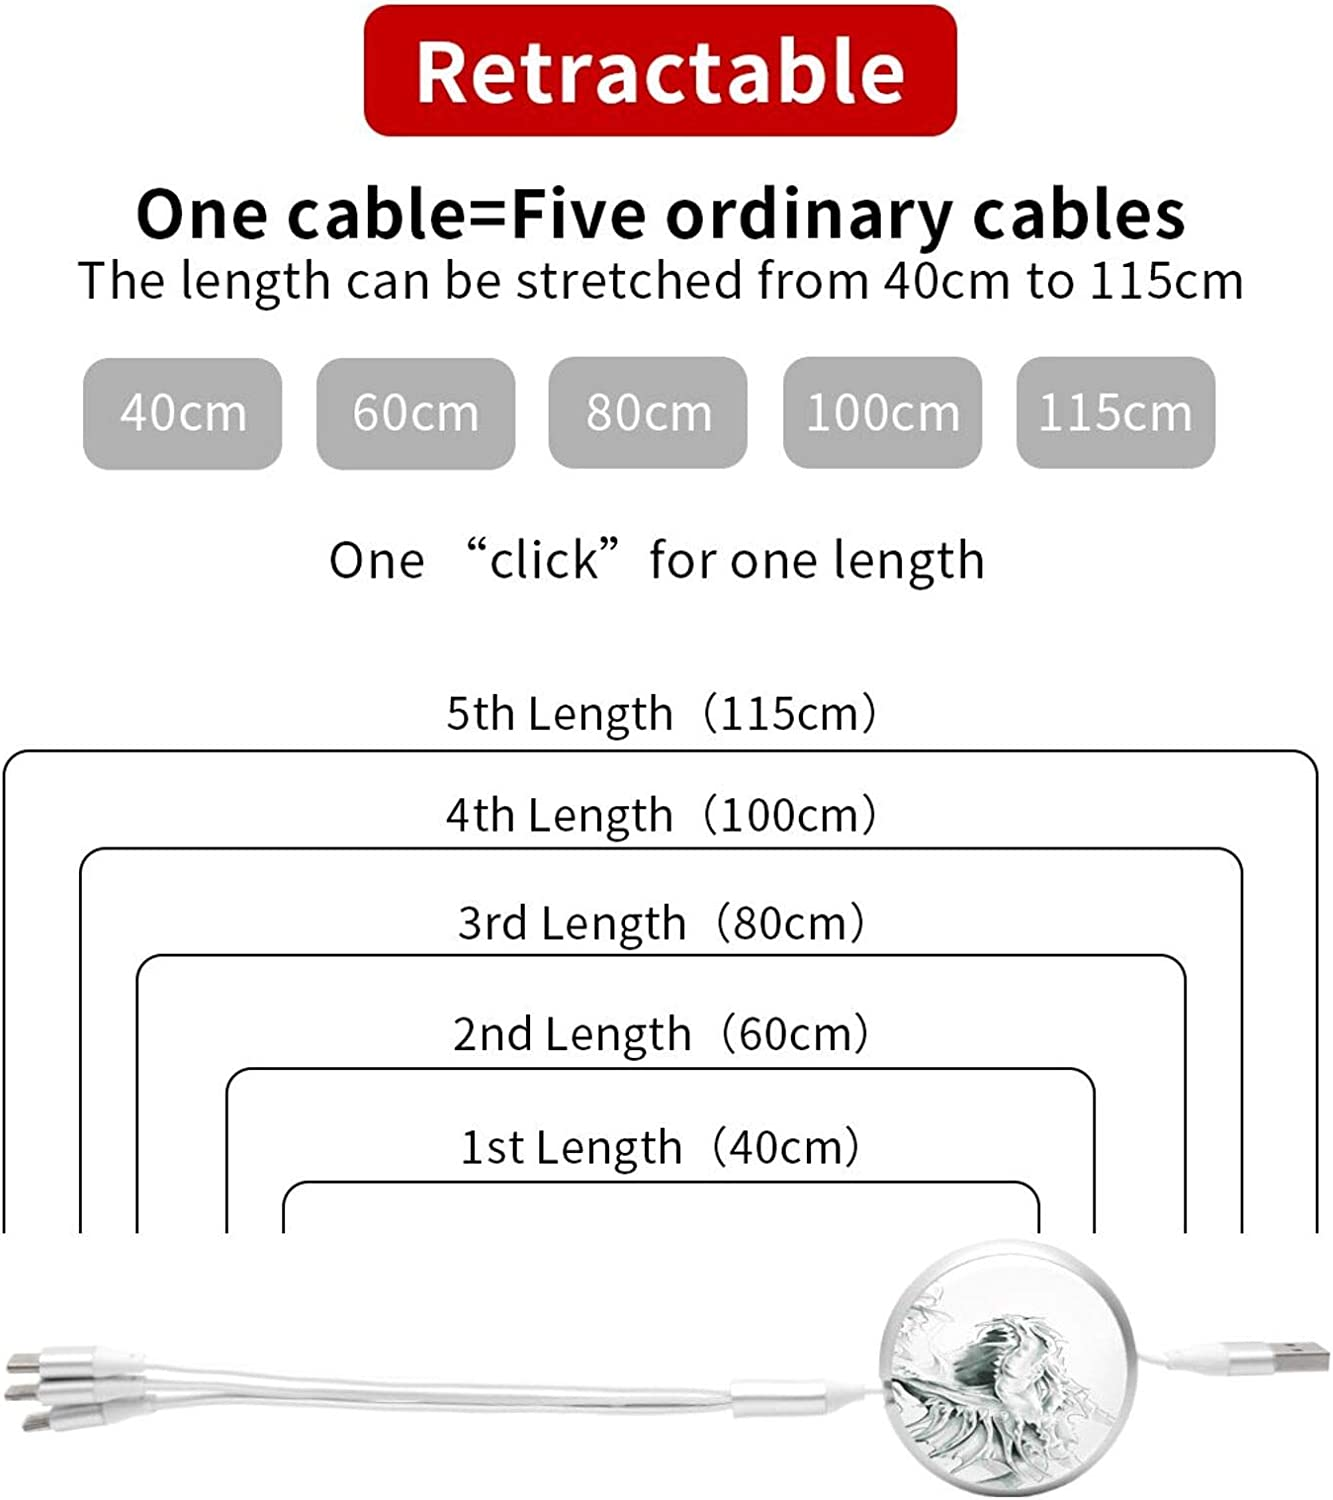 Multi Charging Cable Portable 3 in 1 Sketch of A Medieval Ancient Character Mythological Creature Abstract Design USB Cable USB Power Cords for Cell Phone Tablets and More Devices Charging